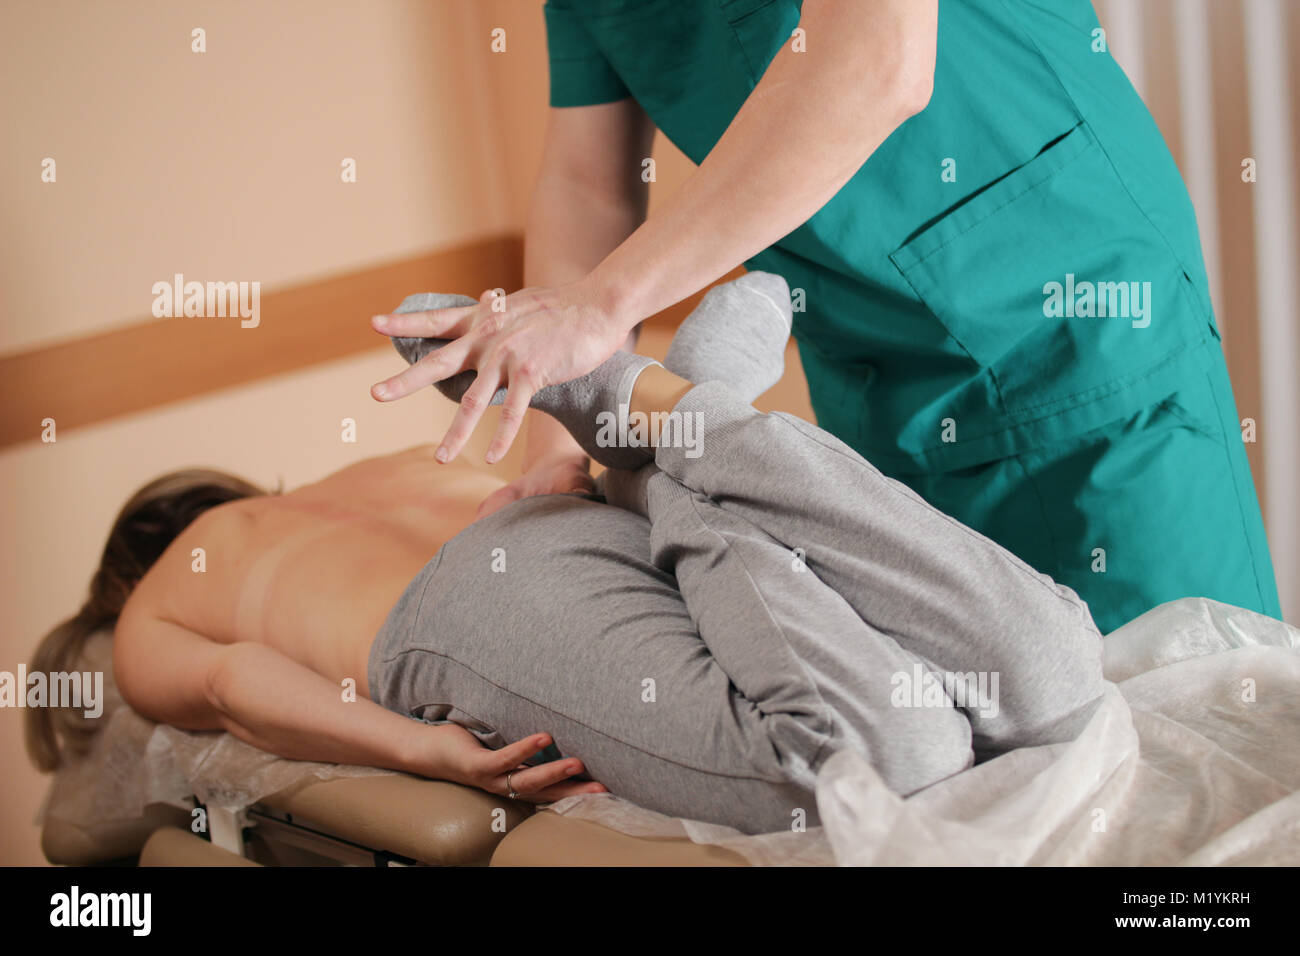 Osteopathy manual therapy for woman - Stock Image